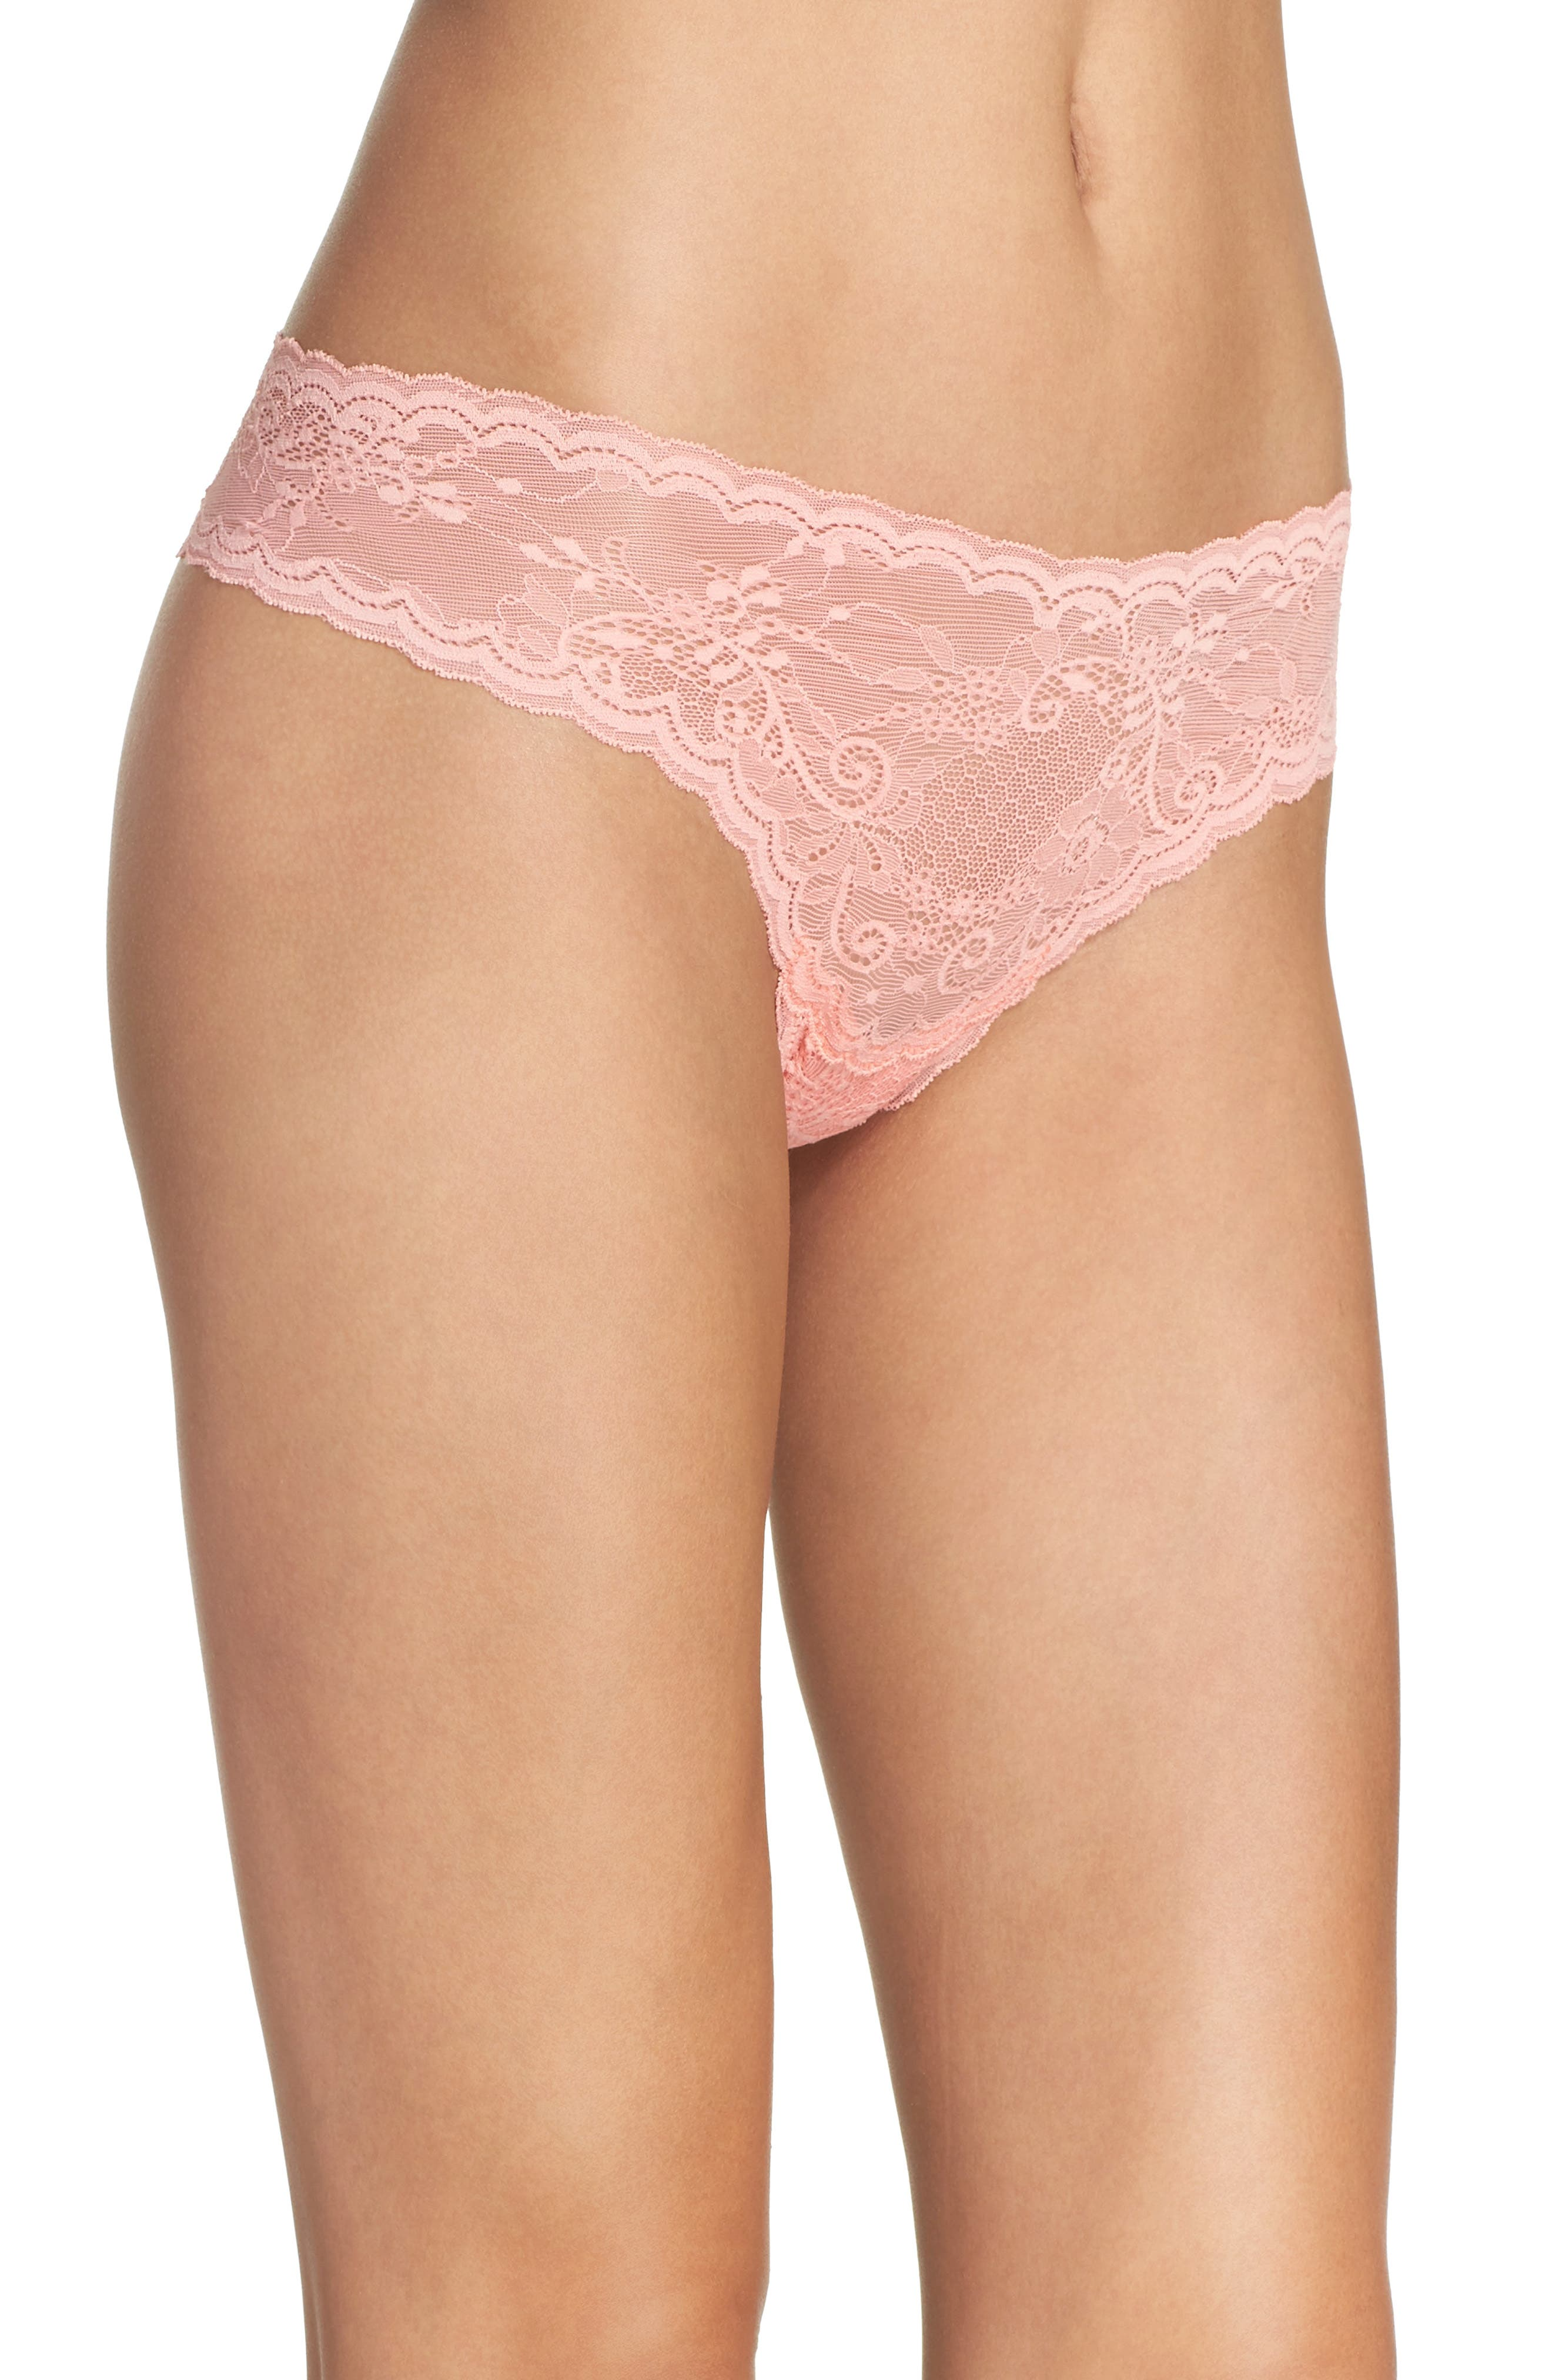 'Trenta' Low Rise Lace Thong,                             Alternate thumbnail 109, color,